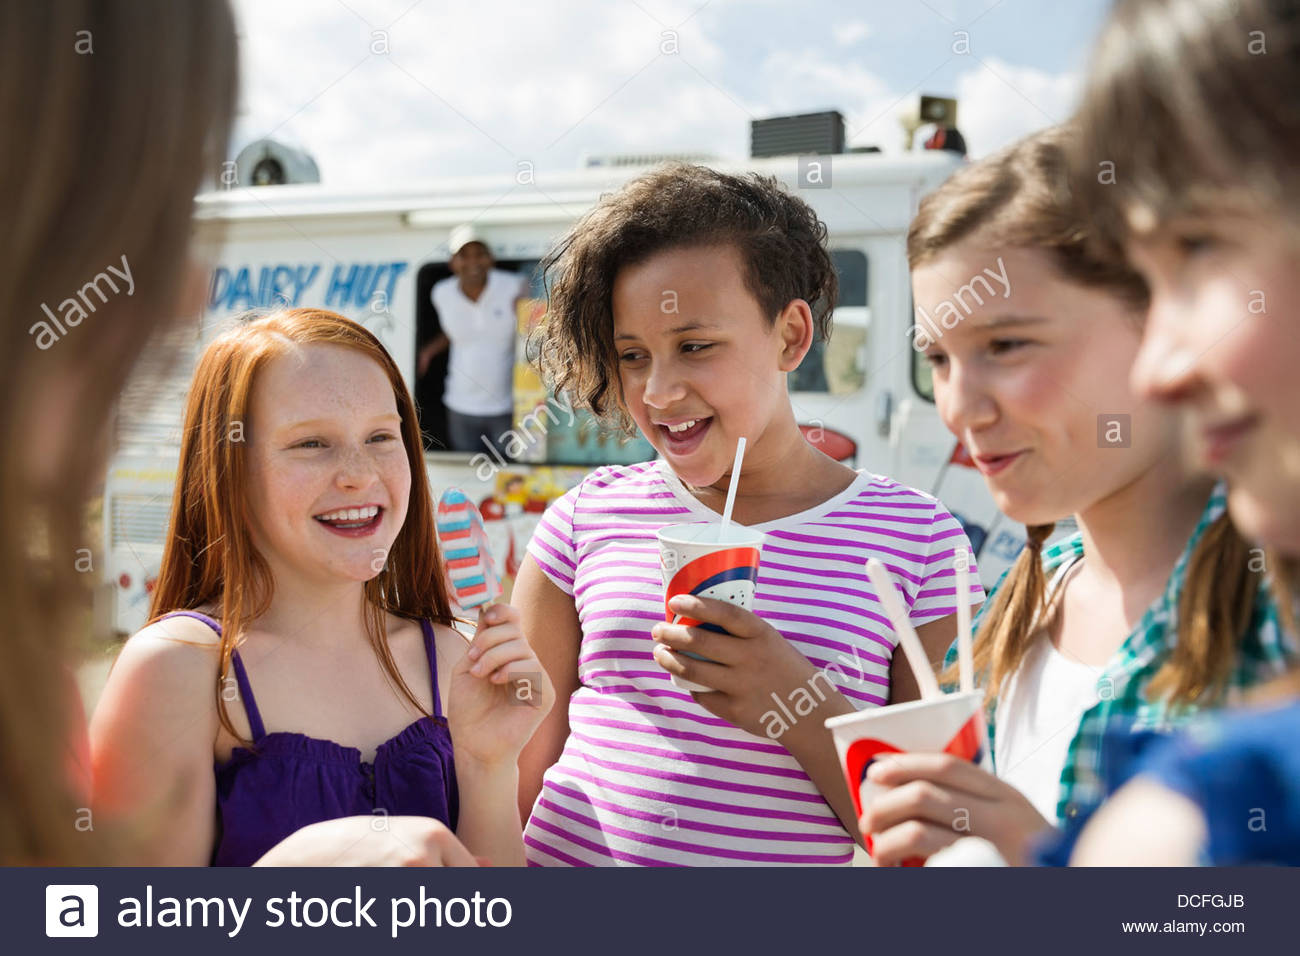 Group of kids eating ice cream outside - Stock Image